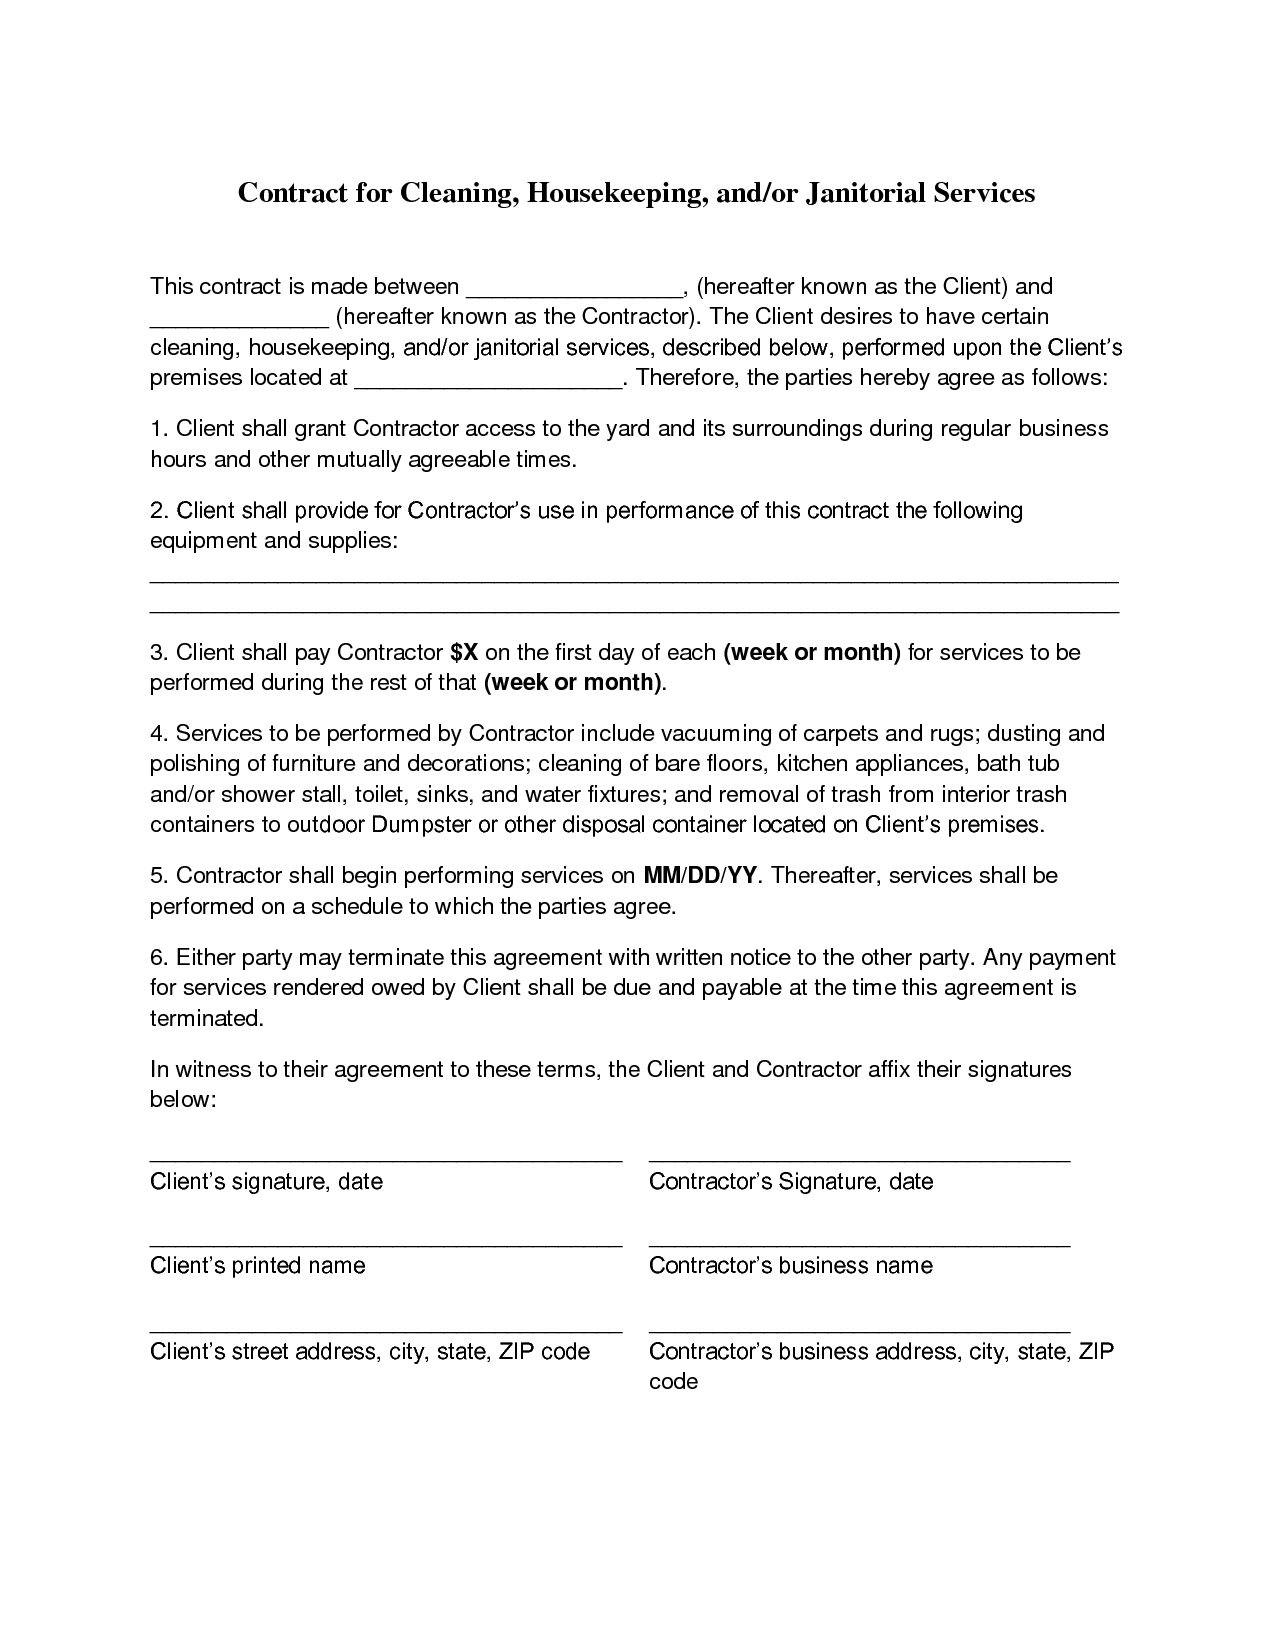 Business Contract Agreement Business Contract Checklist Sale Of Review Cleaning Agreement